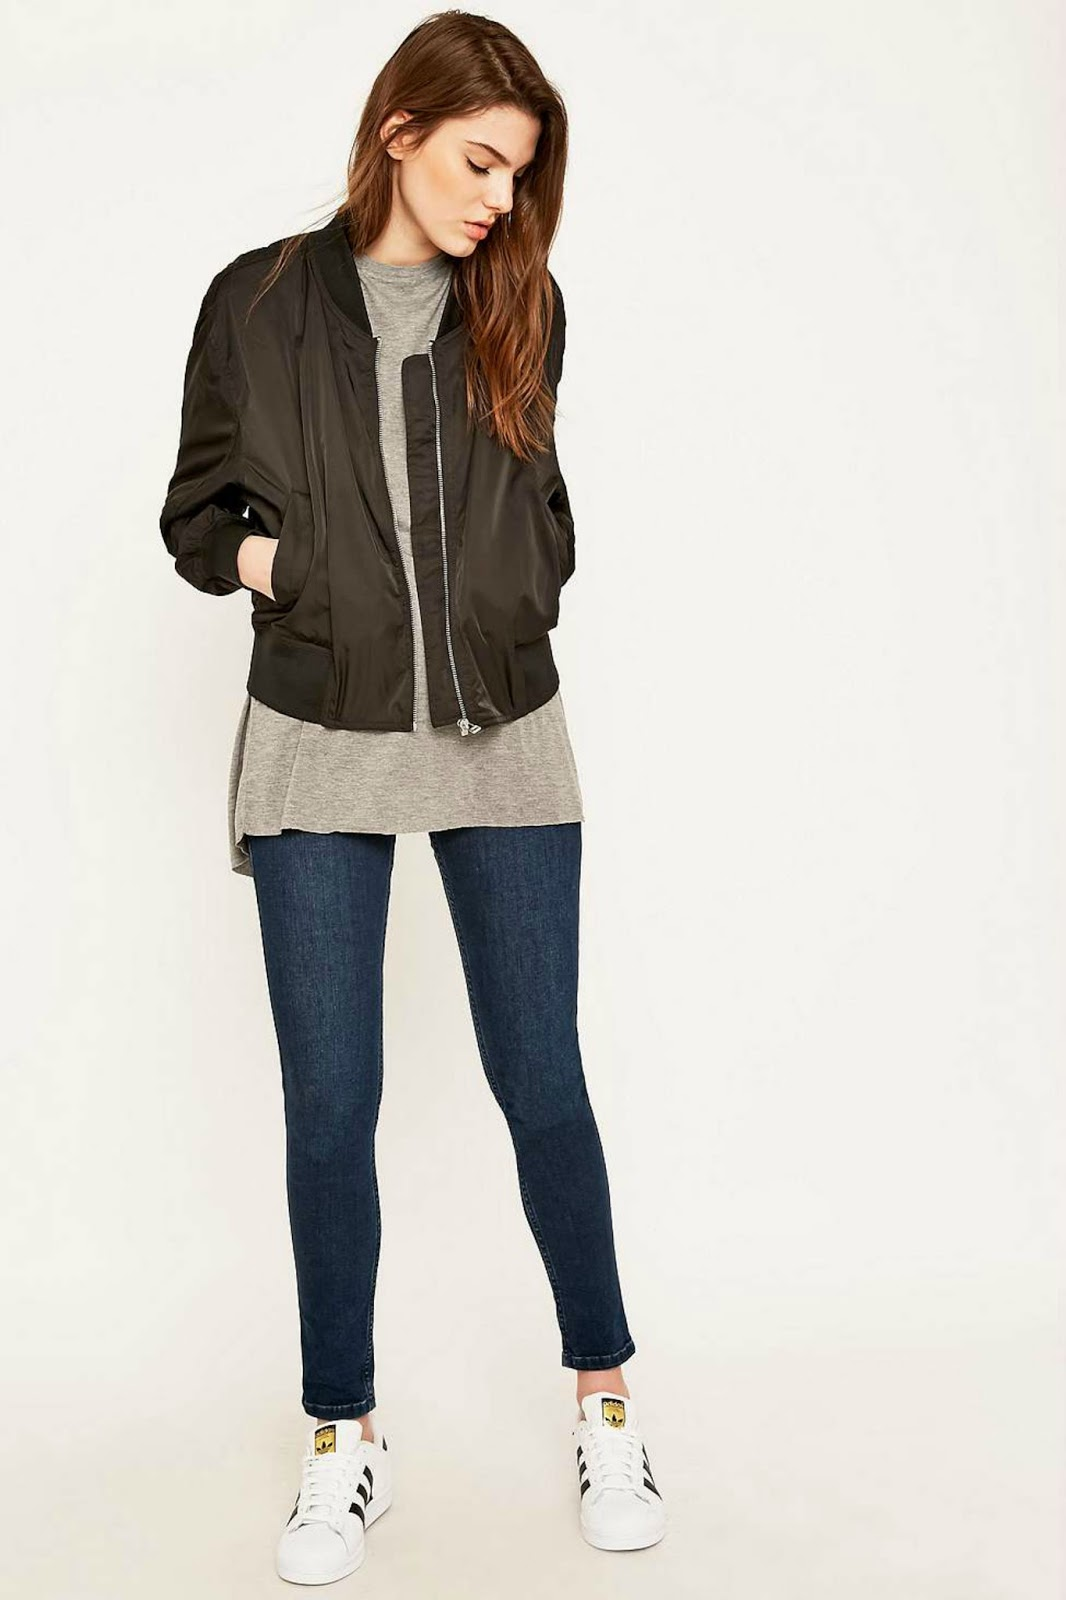 http://www.urbanoutfitters.com/uk/catalog/productdetail.jsp?id=5139630662348&category=WOMENS-BOMBER-JACKETS-EU